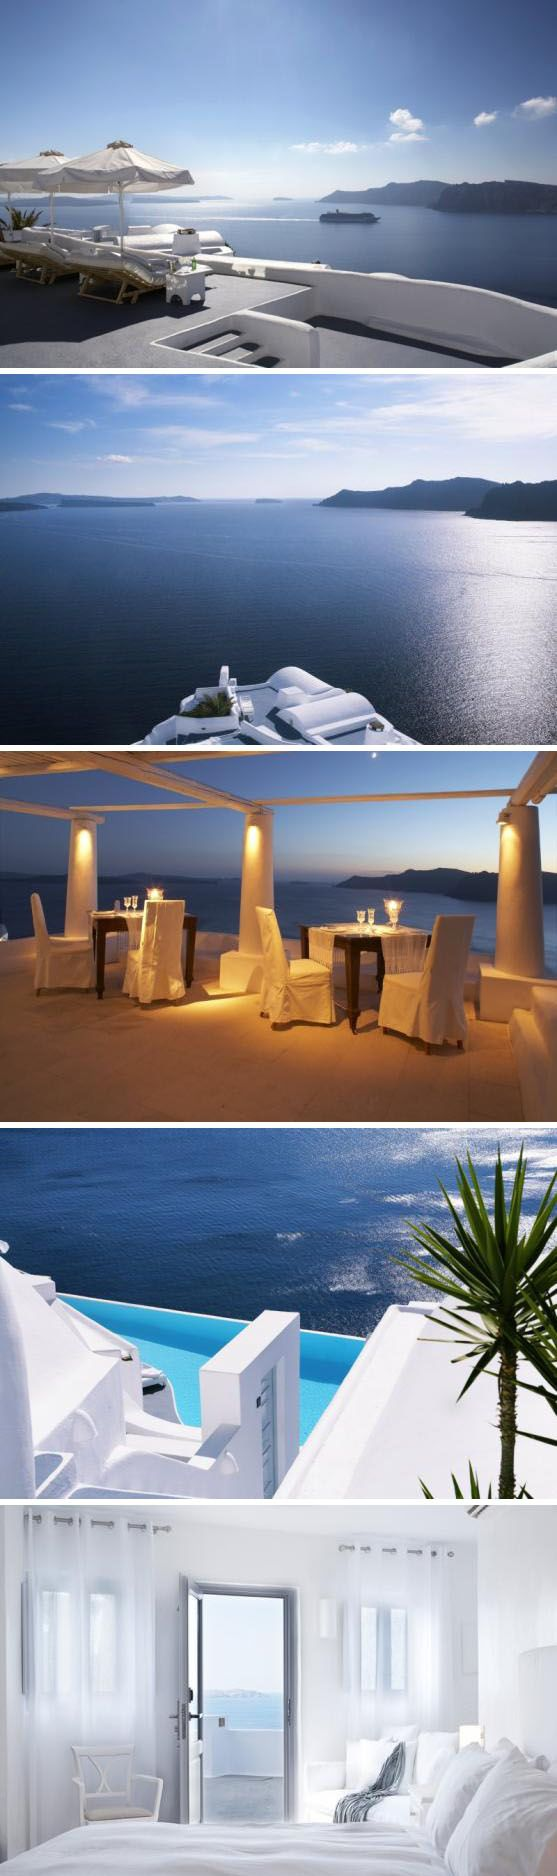 Honeymoon Destinations Luxury Style: Katikies Hotel, Greece